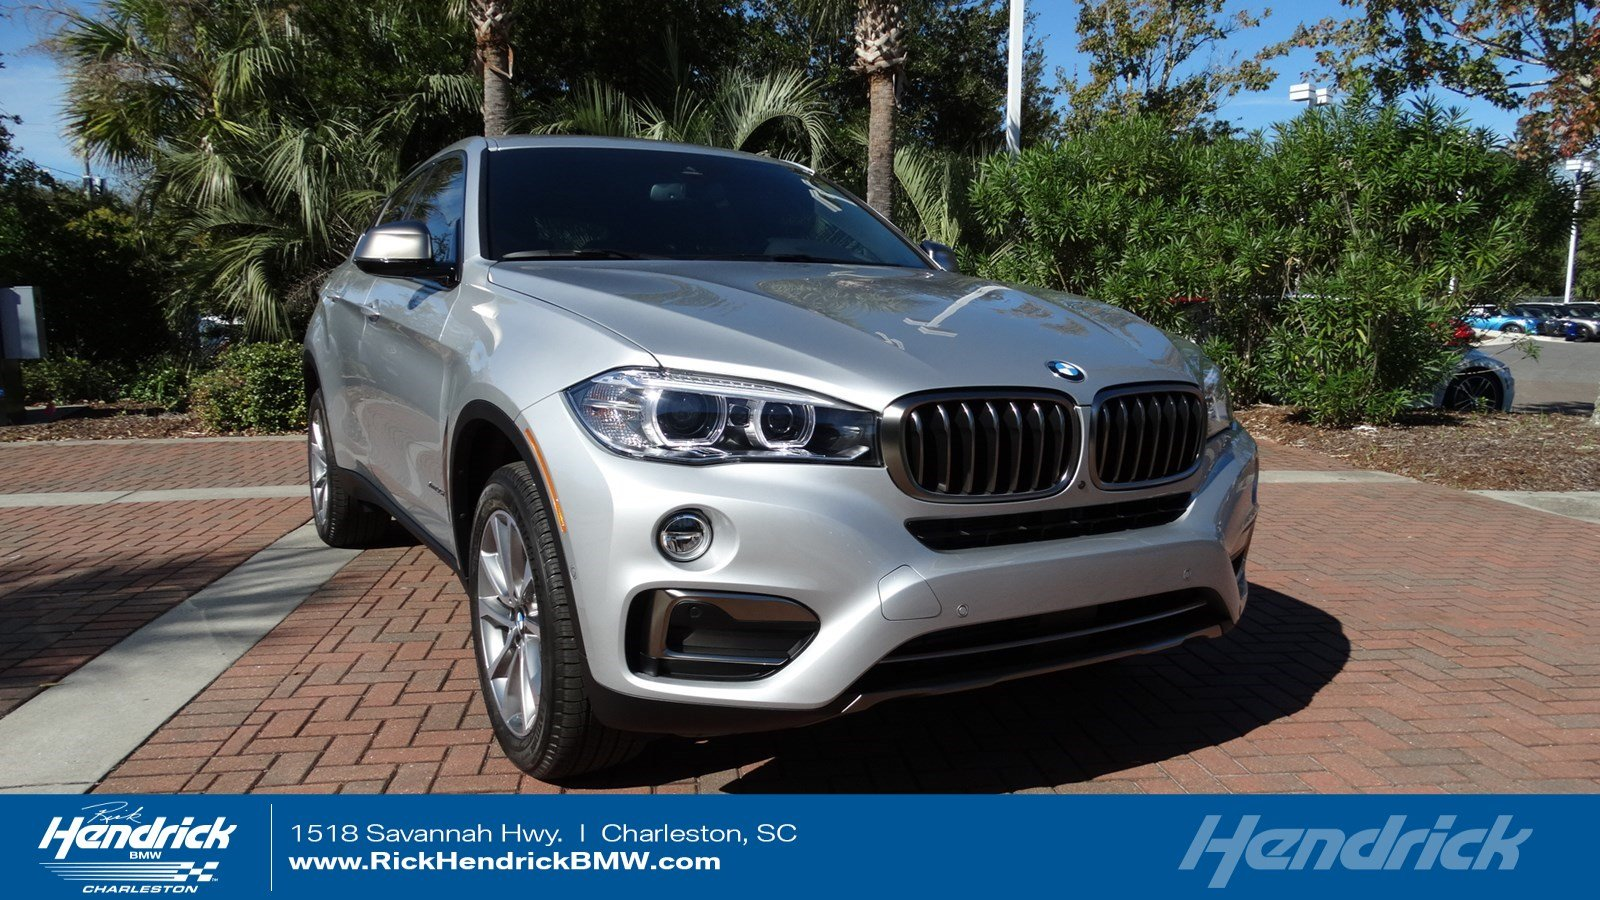 2019 Bmw X6 Xdrive35i For Sale In Charleston Sc Suv 5uxku2c50k0z63997